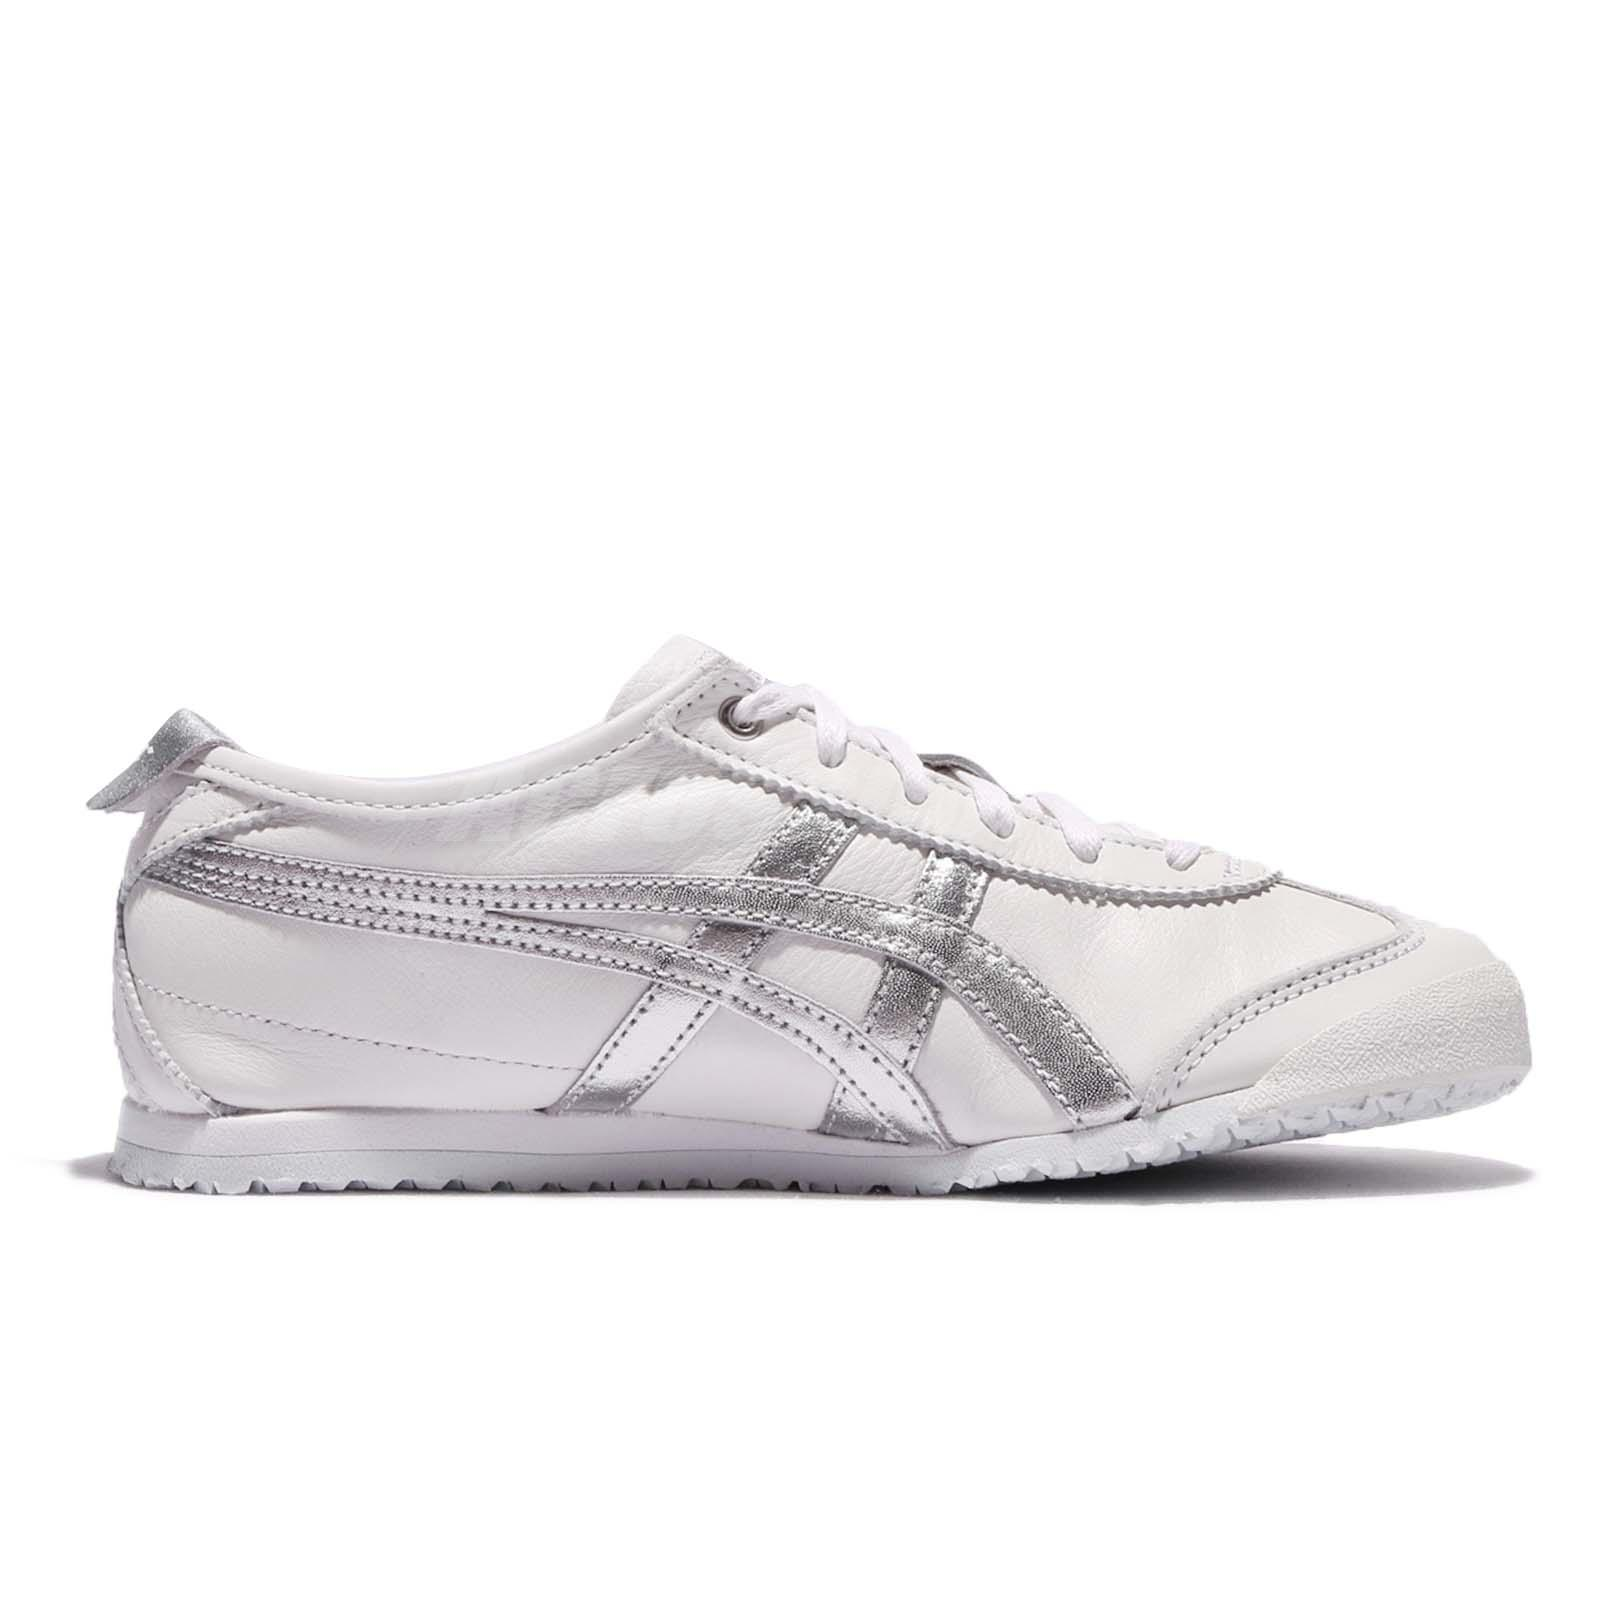 half off 878eb f6d64 Details about Asics Onitsuka Tiger Mexico 66 White Silver Leather Men Shoe  Sneakers D508K-0193